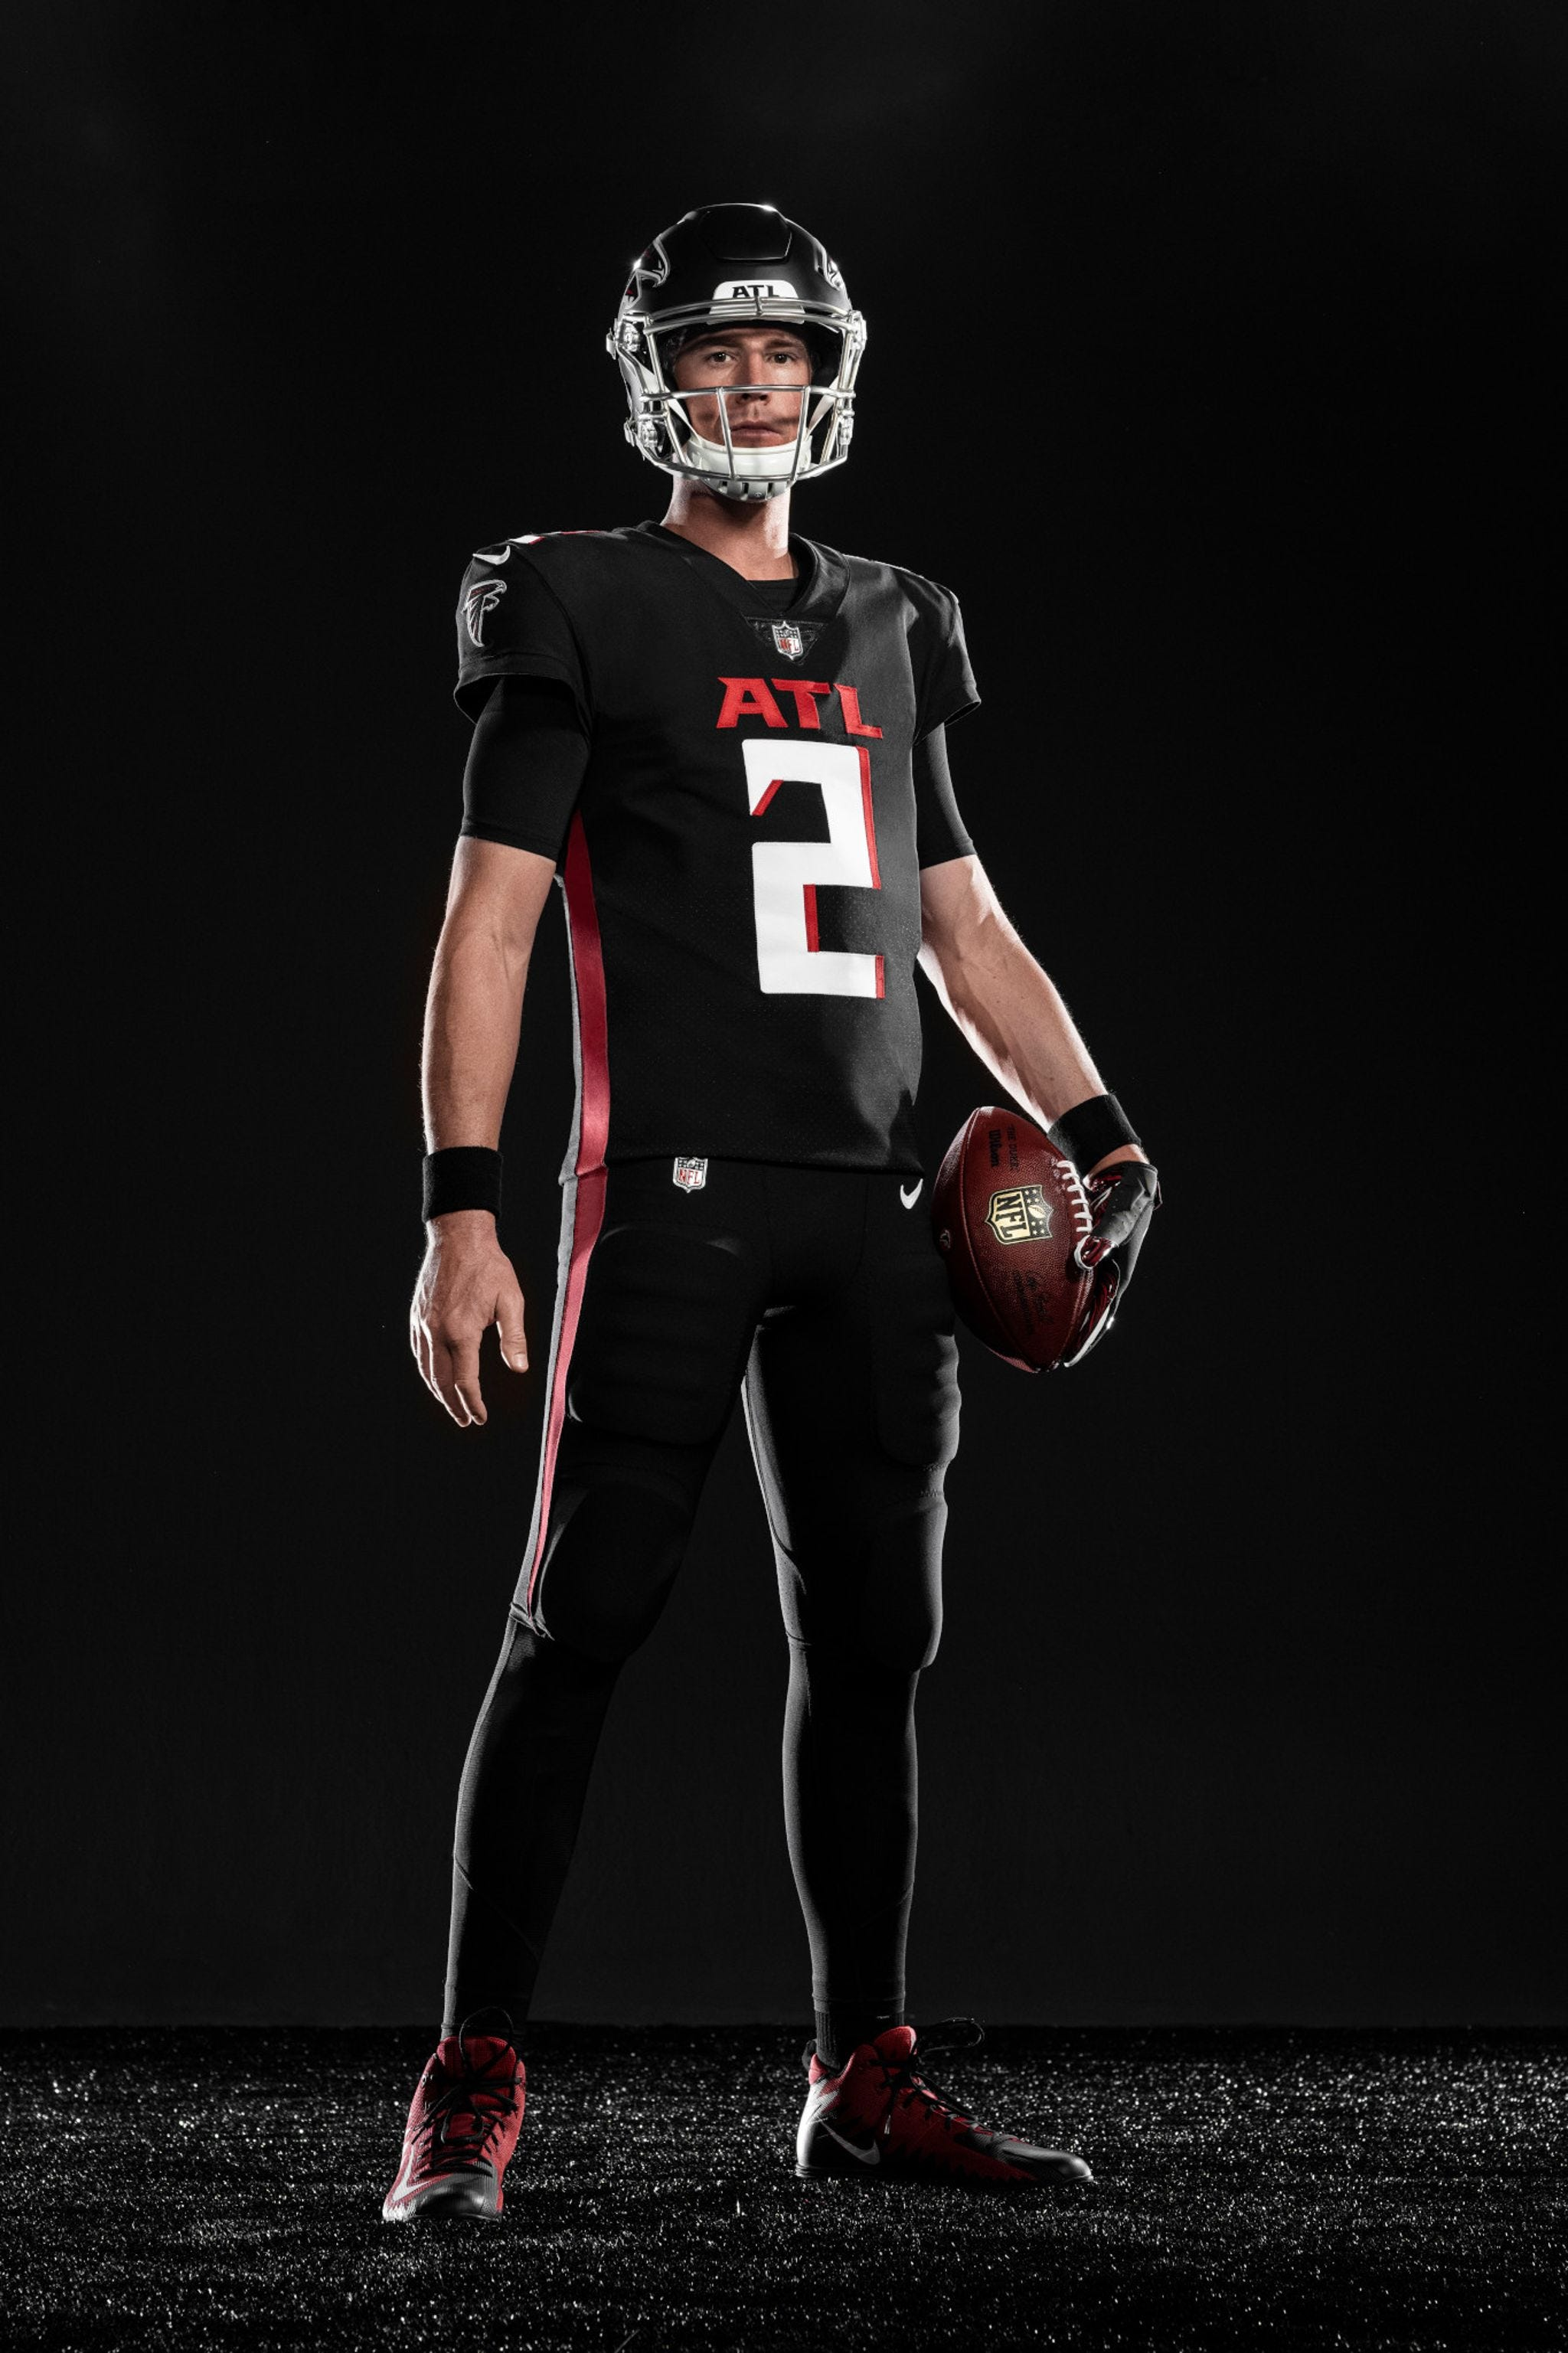 Atlanta Falcons release new uniforms after photos were leaked online